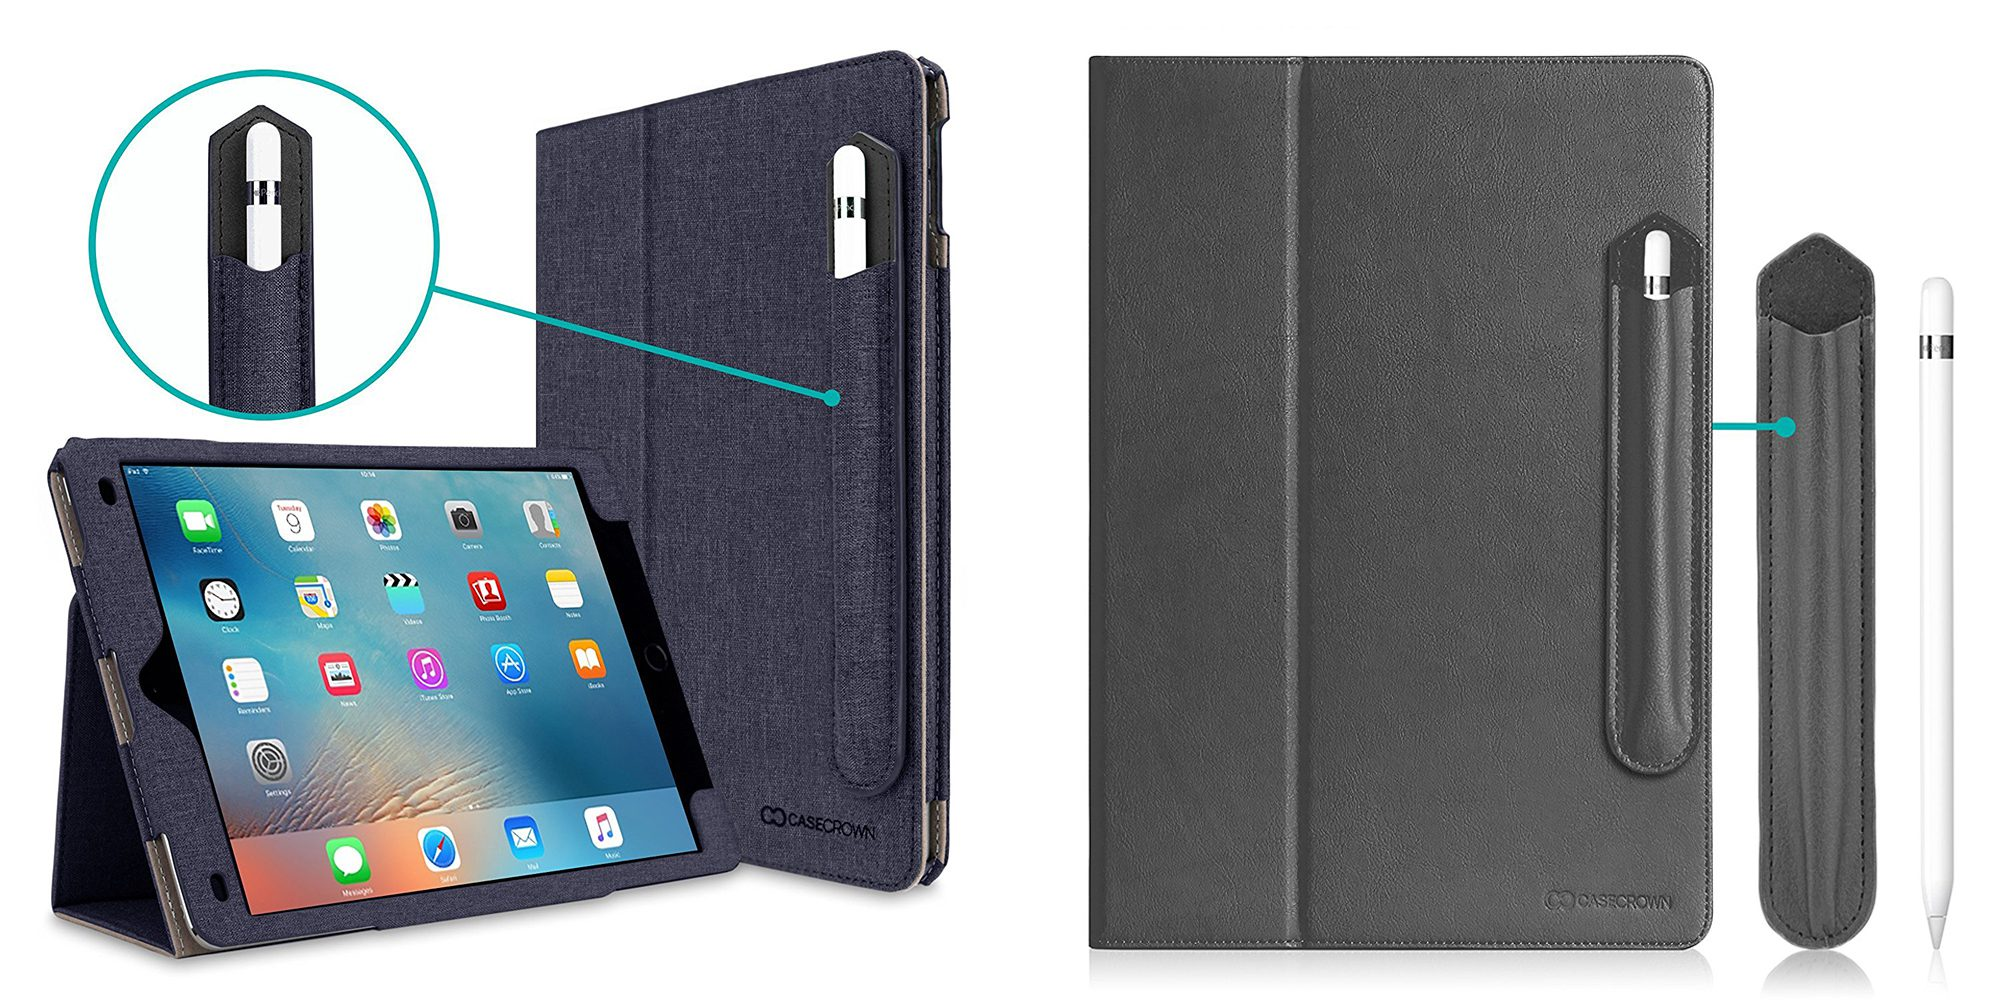 casecrown-ipad-case-deals